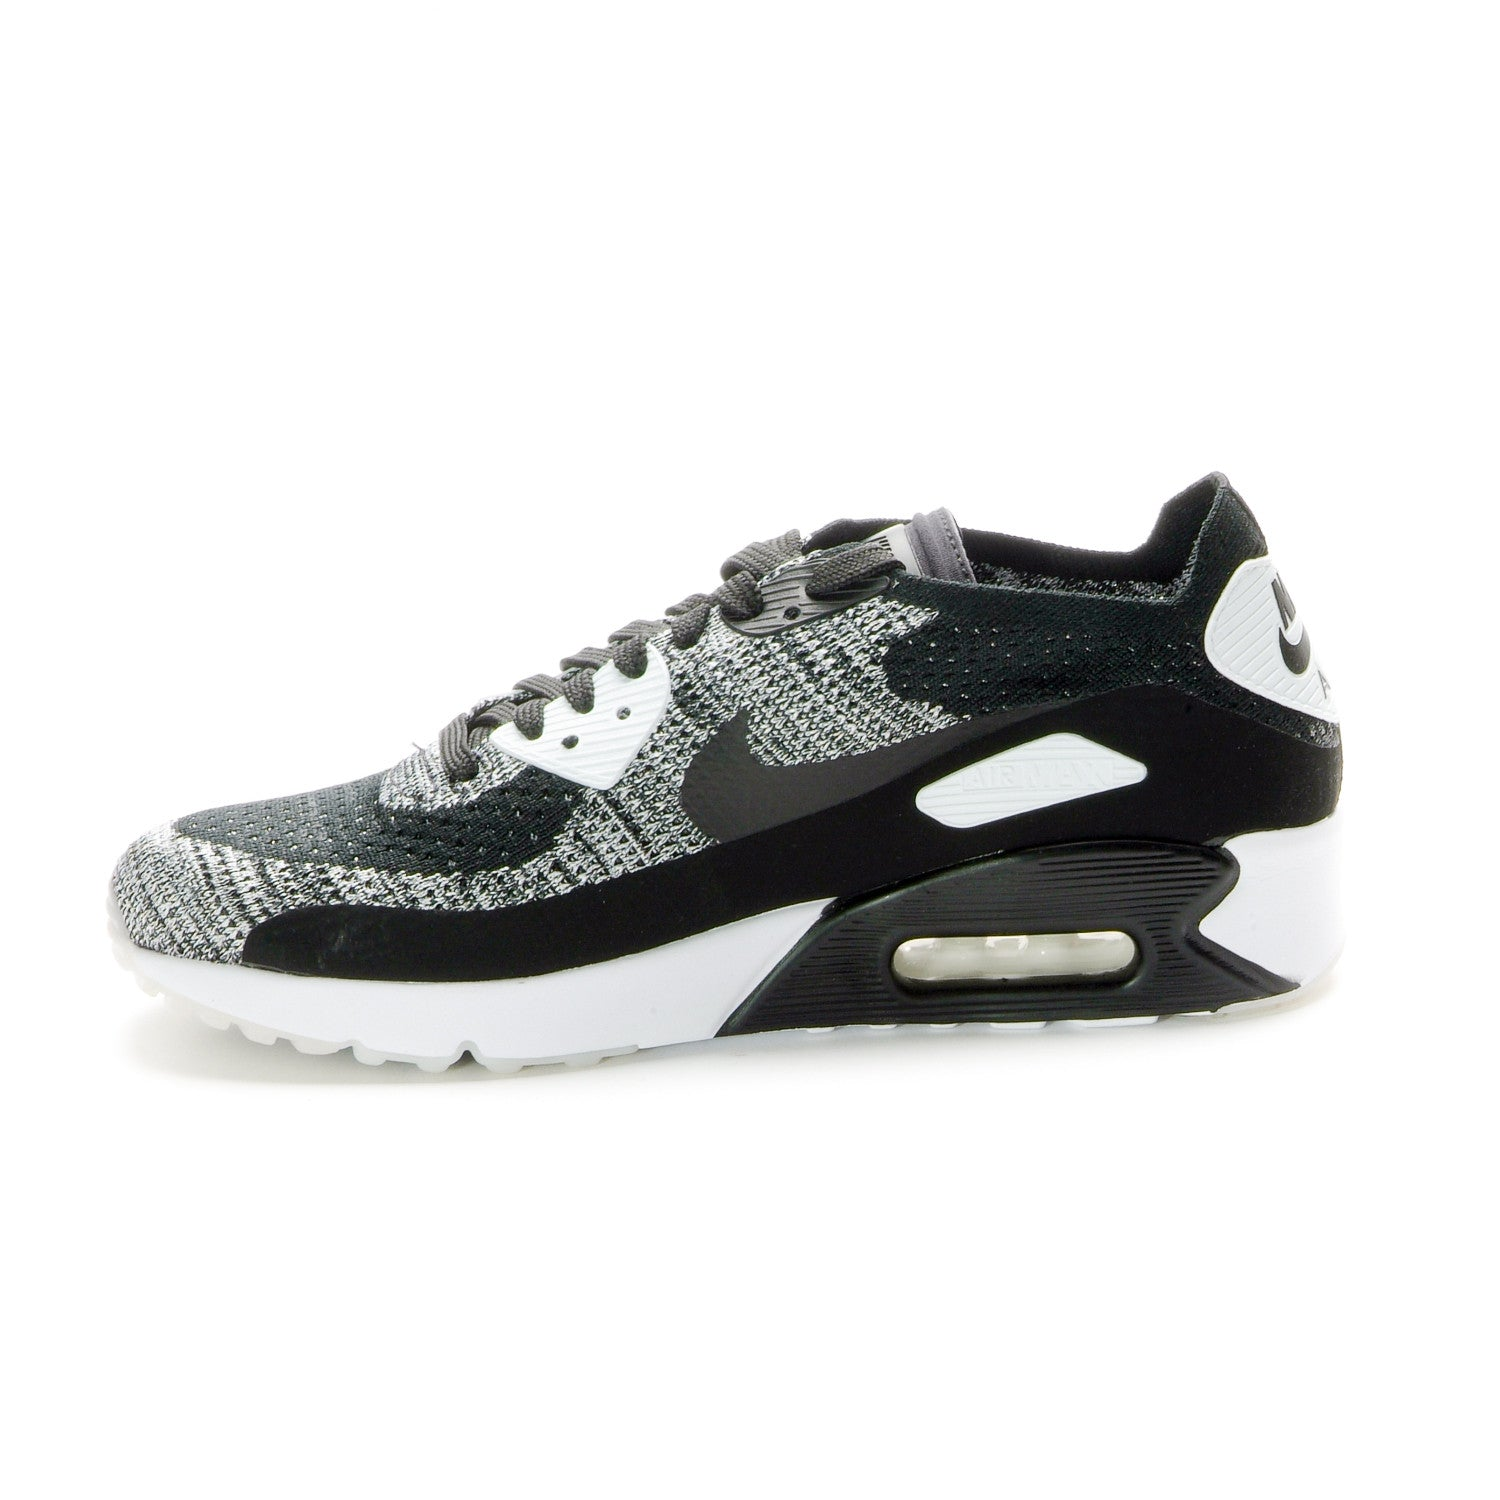 new concept e6daf 2c90d Nike - Air Max 90 Ultra 2.0 Flyknit - Black/White